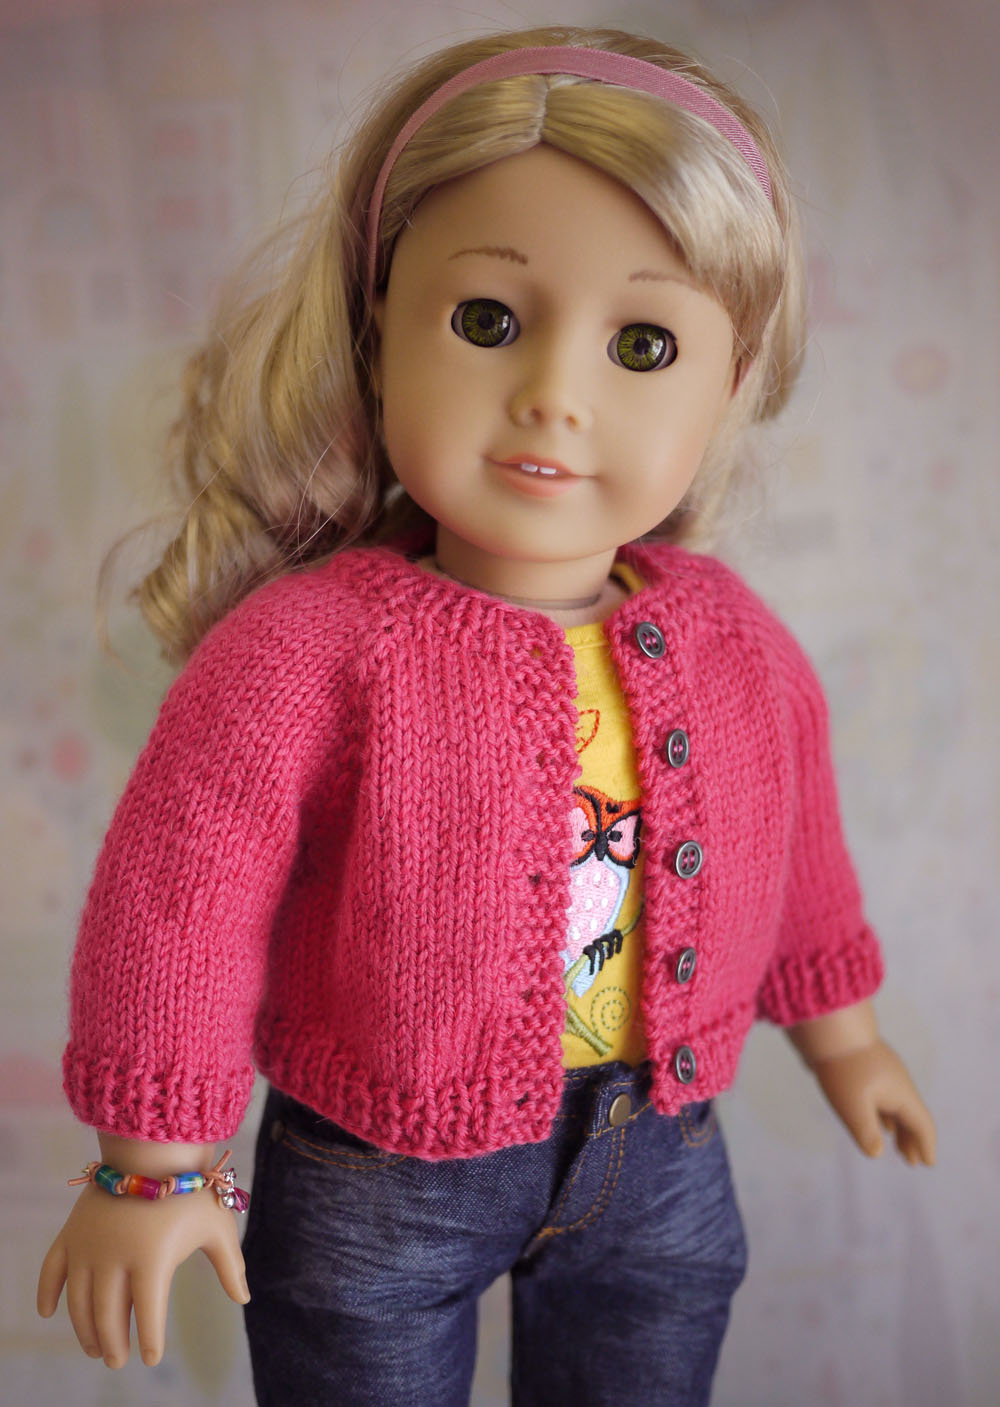 Red Heart Free Knitting Patterns For Dolls : American Girl Dolls Cindy Rice Designs